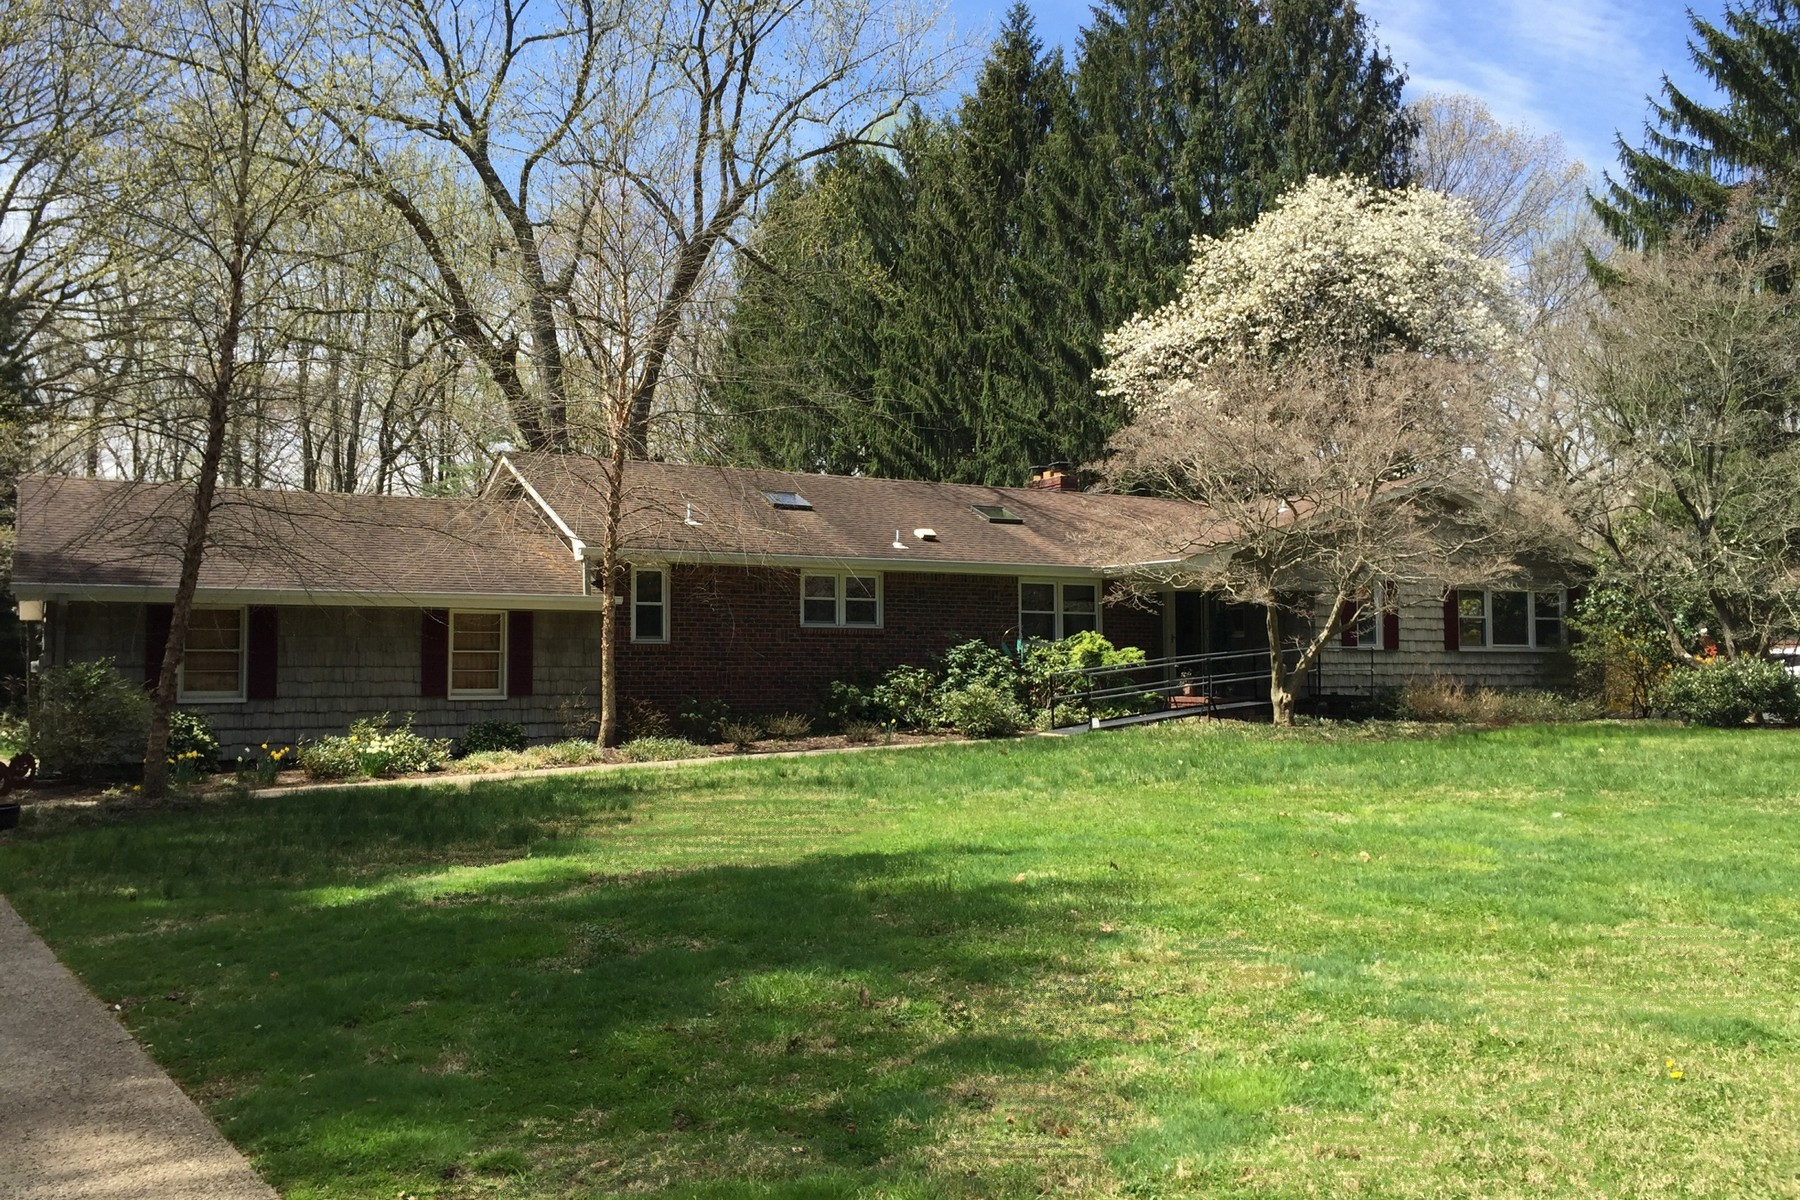 Single Family Home for Sale at 116 Alexander Drive Middletown, New Jersey 07701 United States